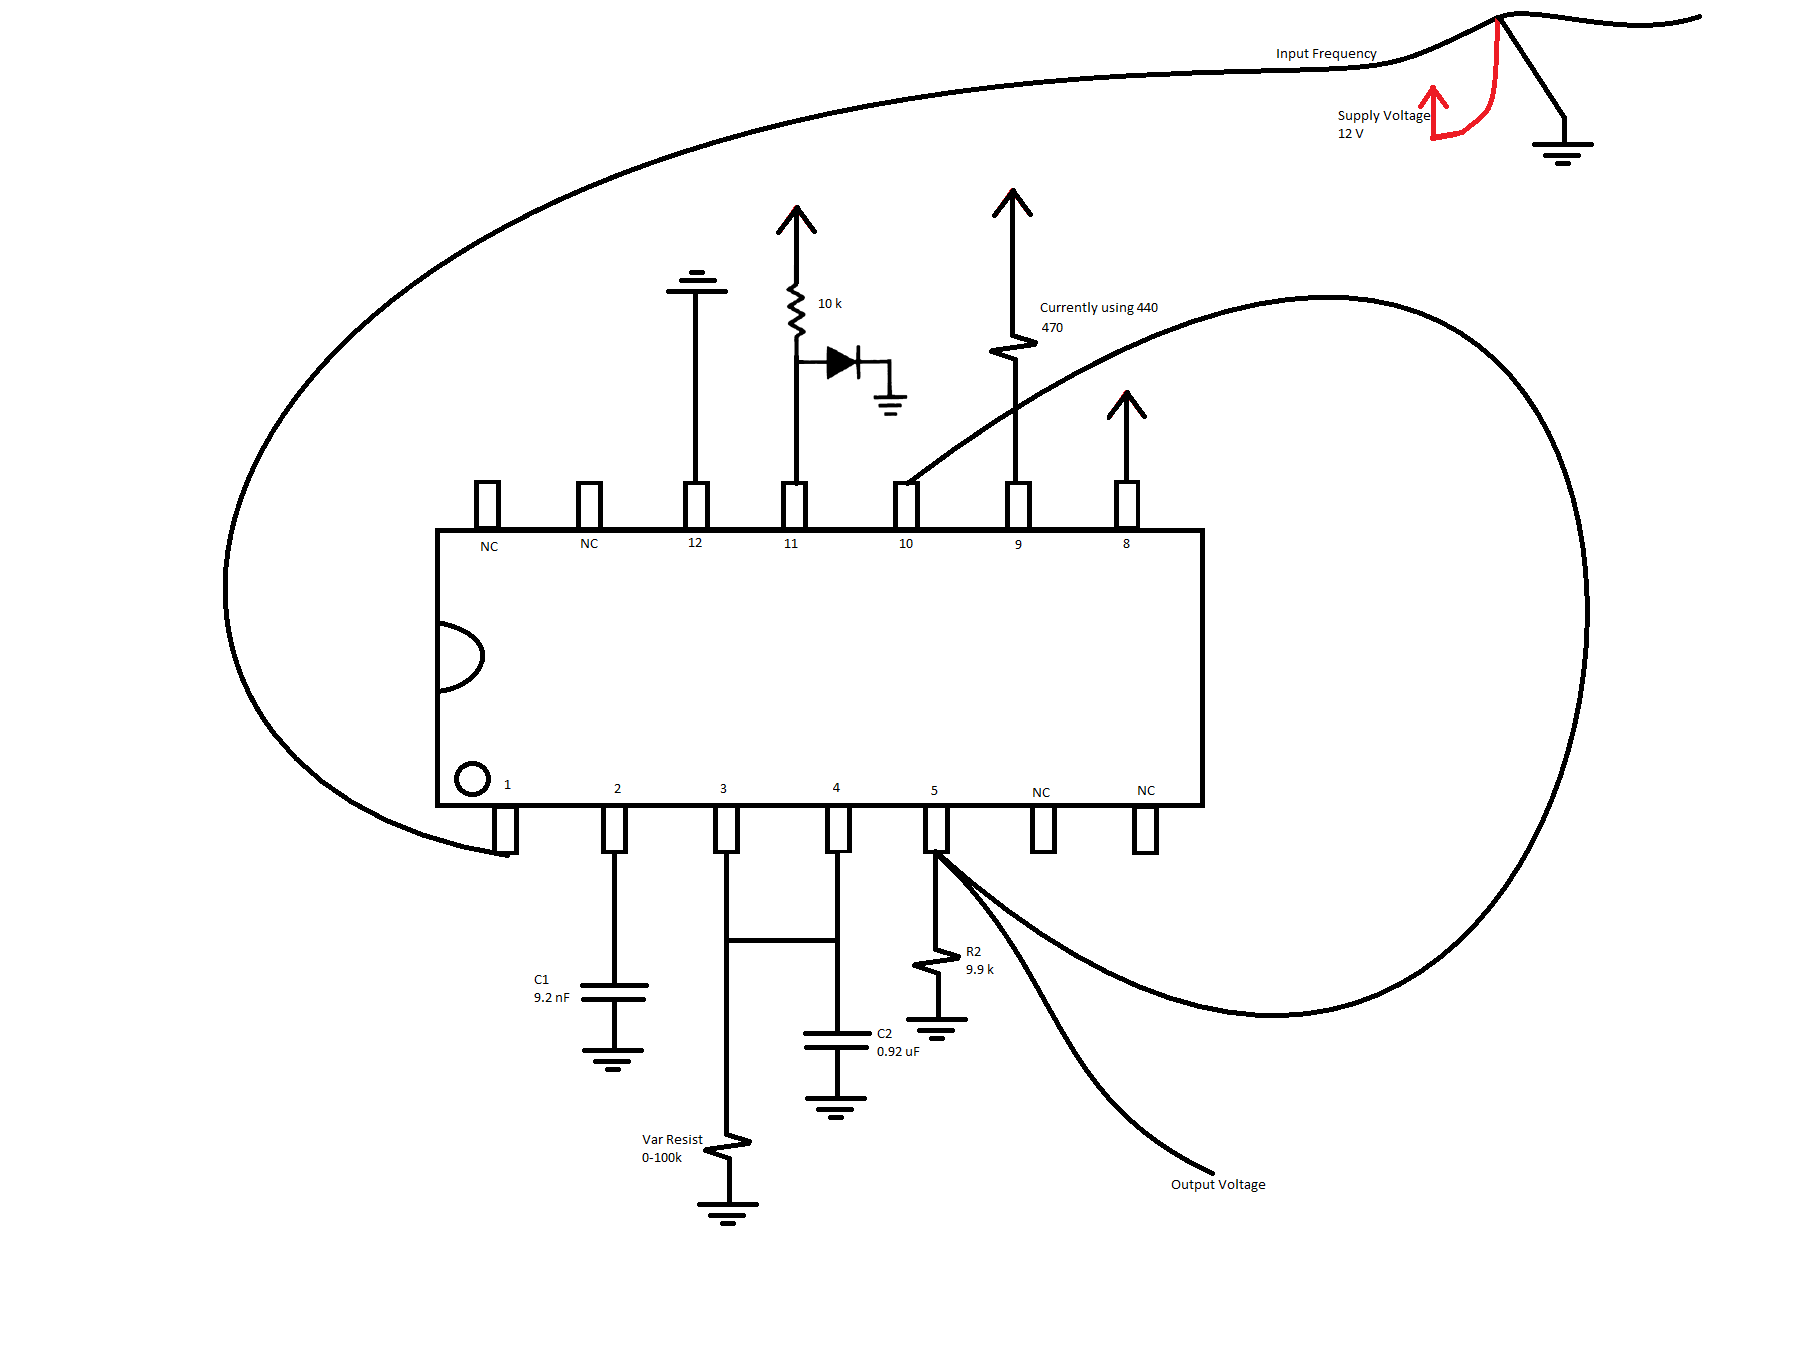 Resolved Lm N Creating A Simple Frequency To Voltage Converter Circuit